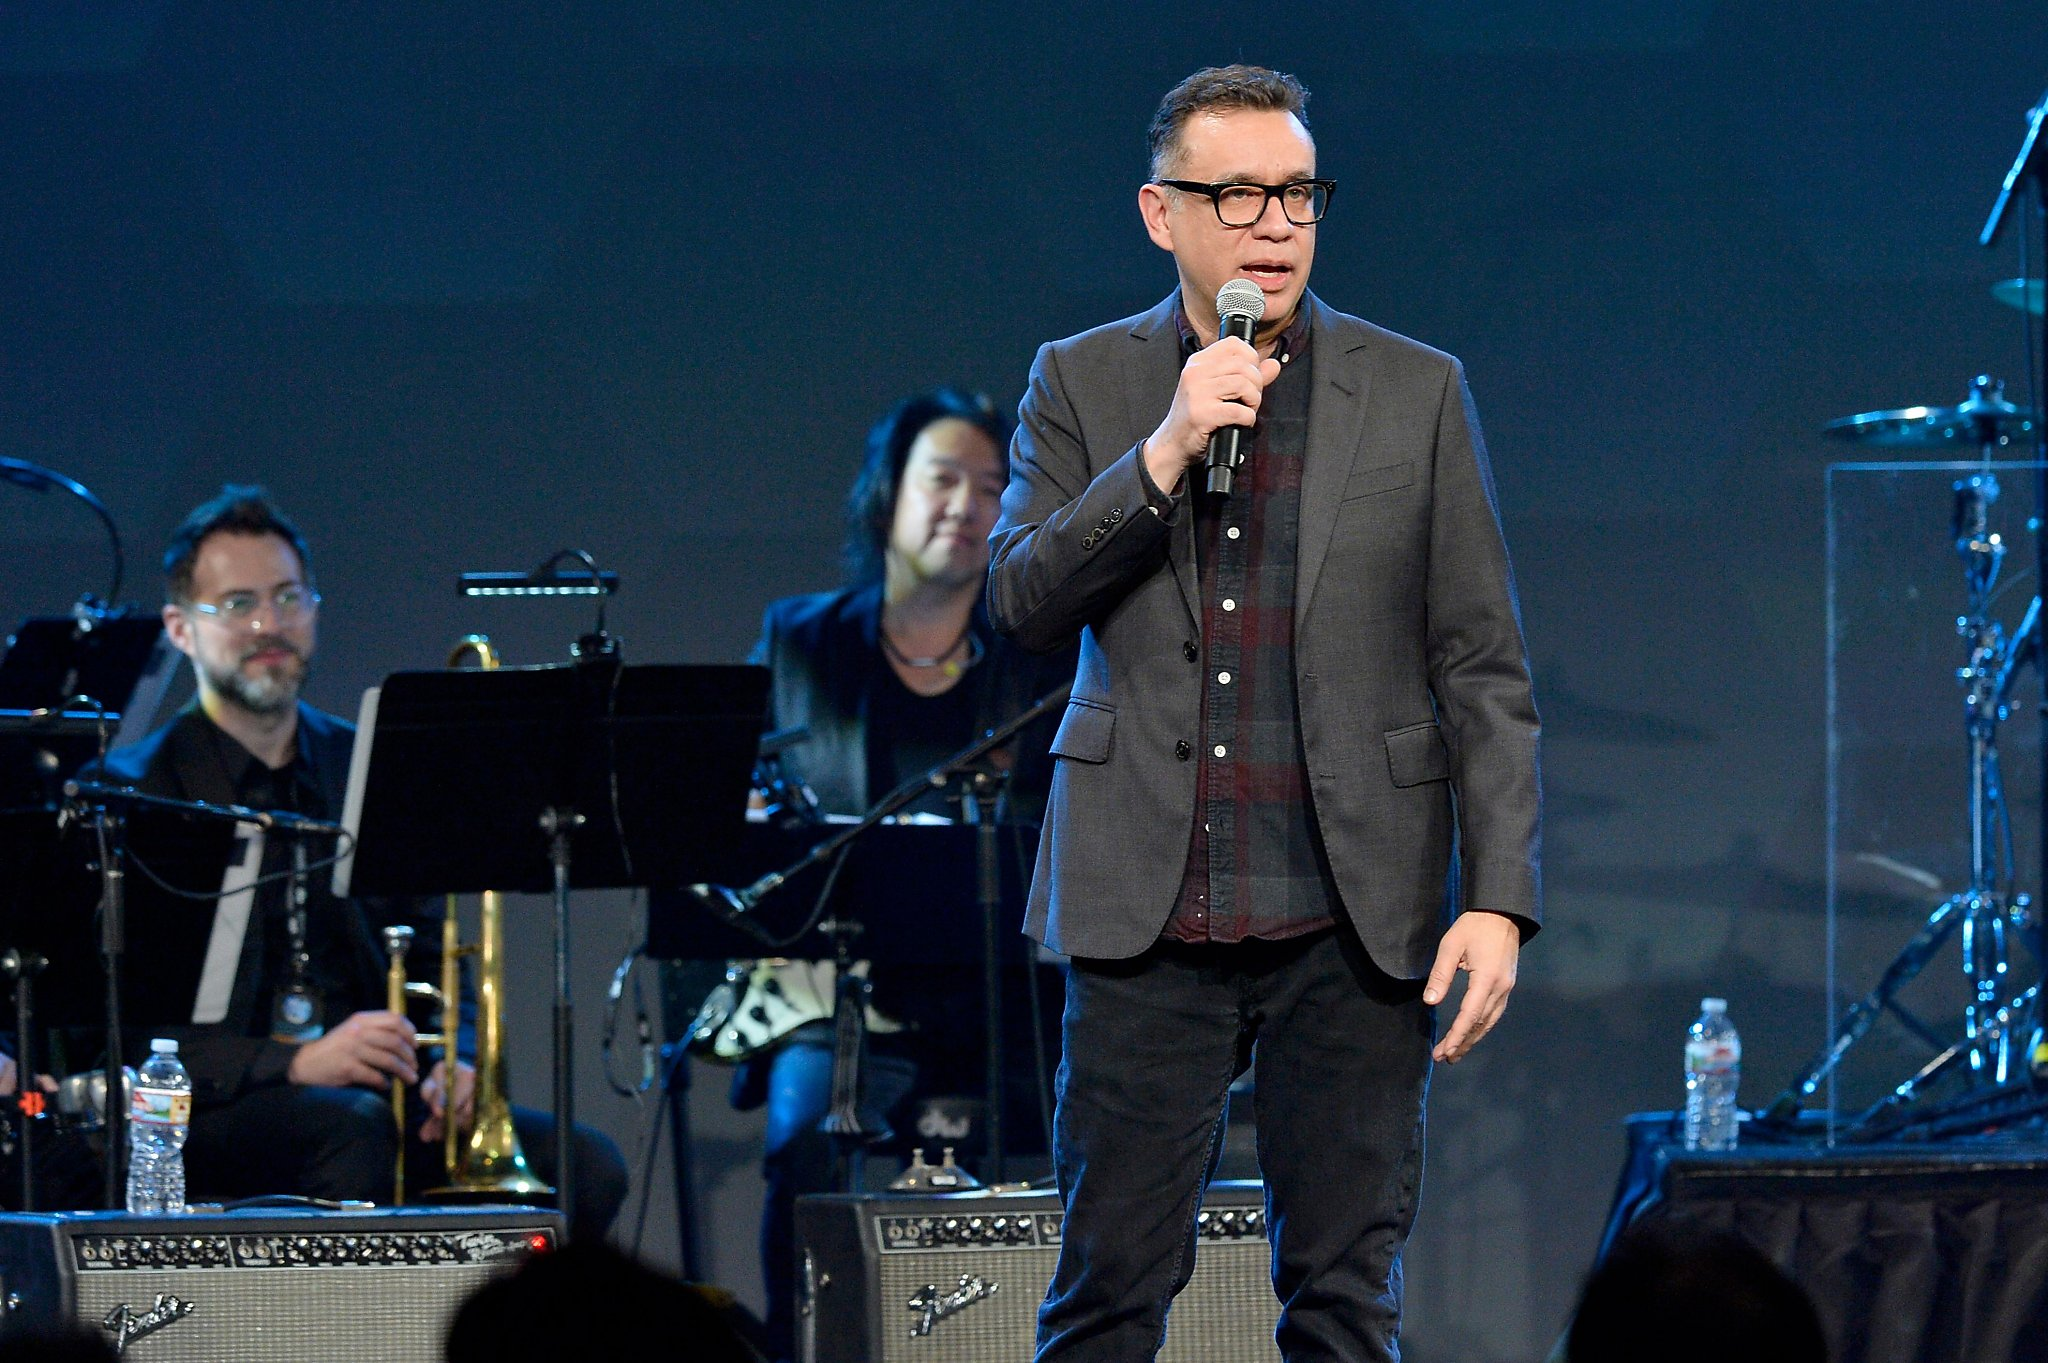 The nexus of music and comedy with Fred Armisen